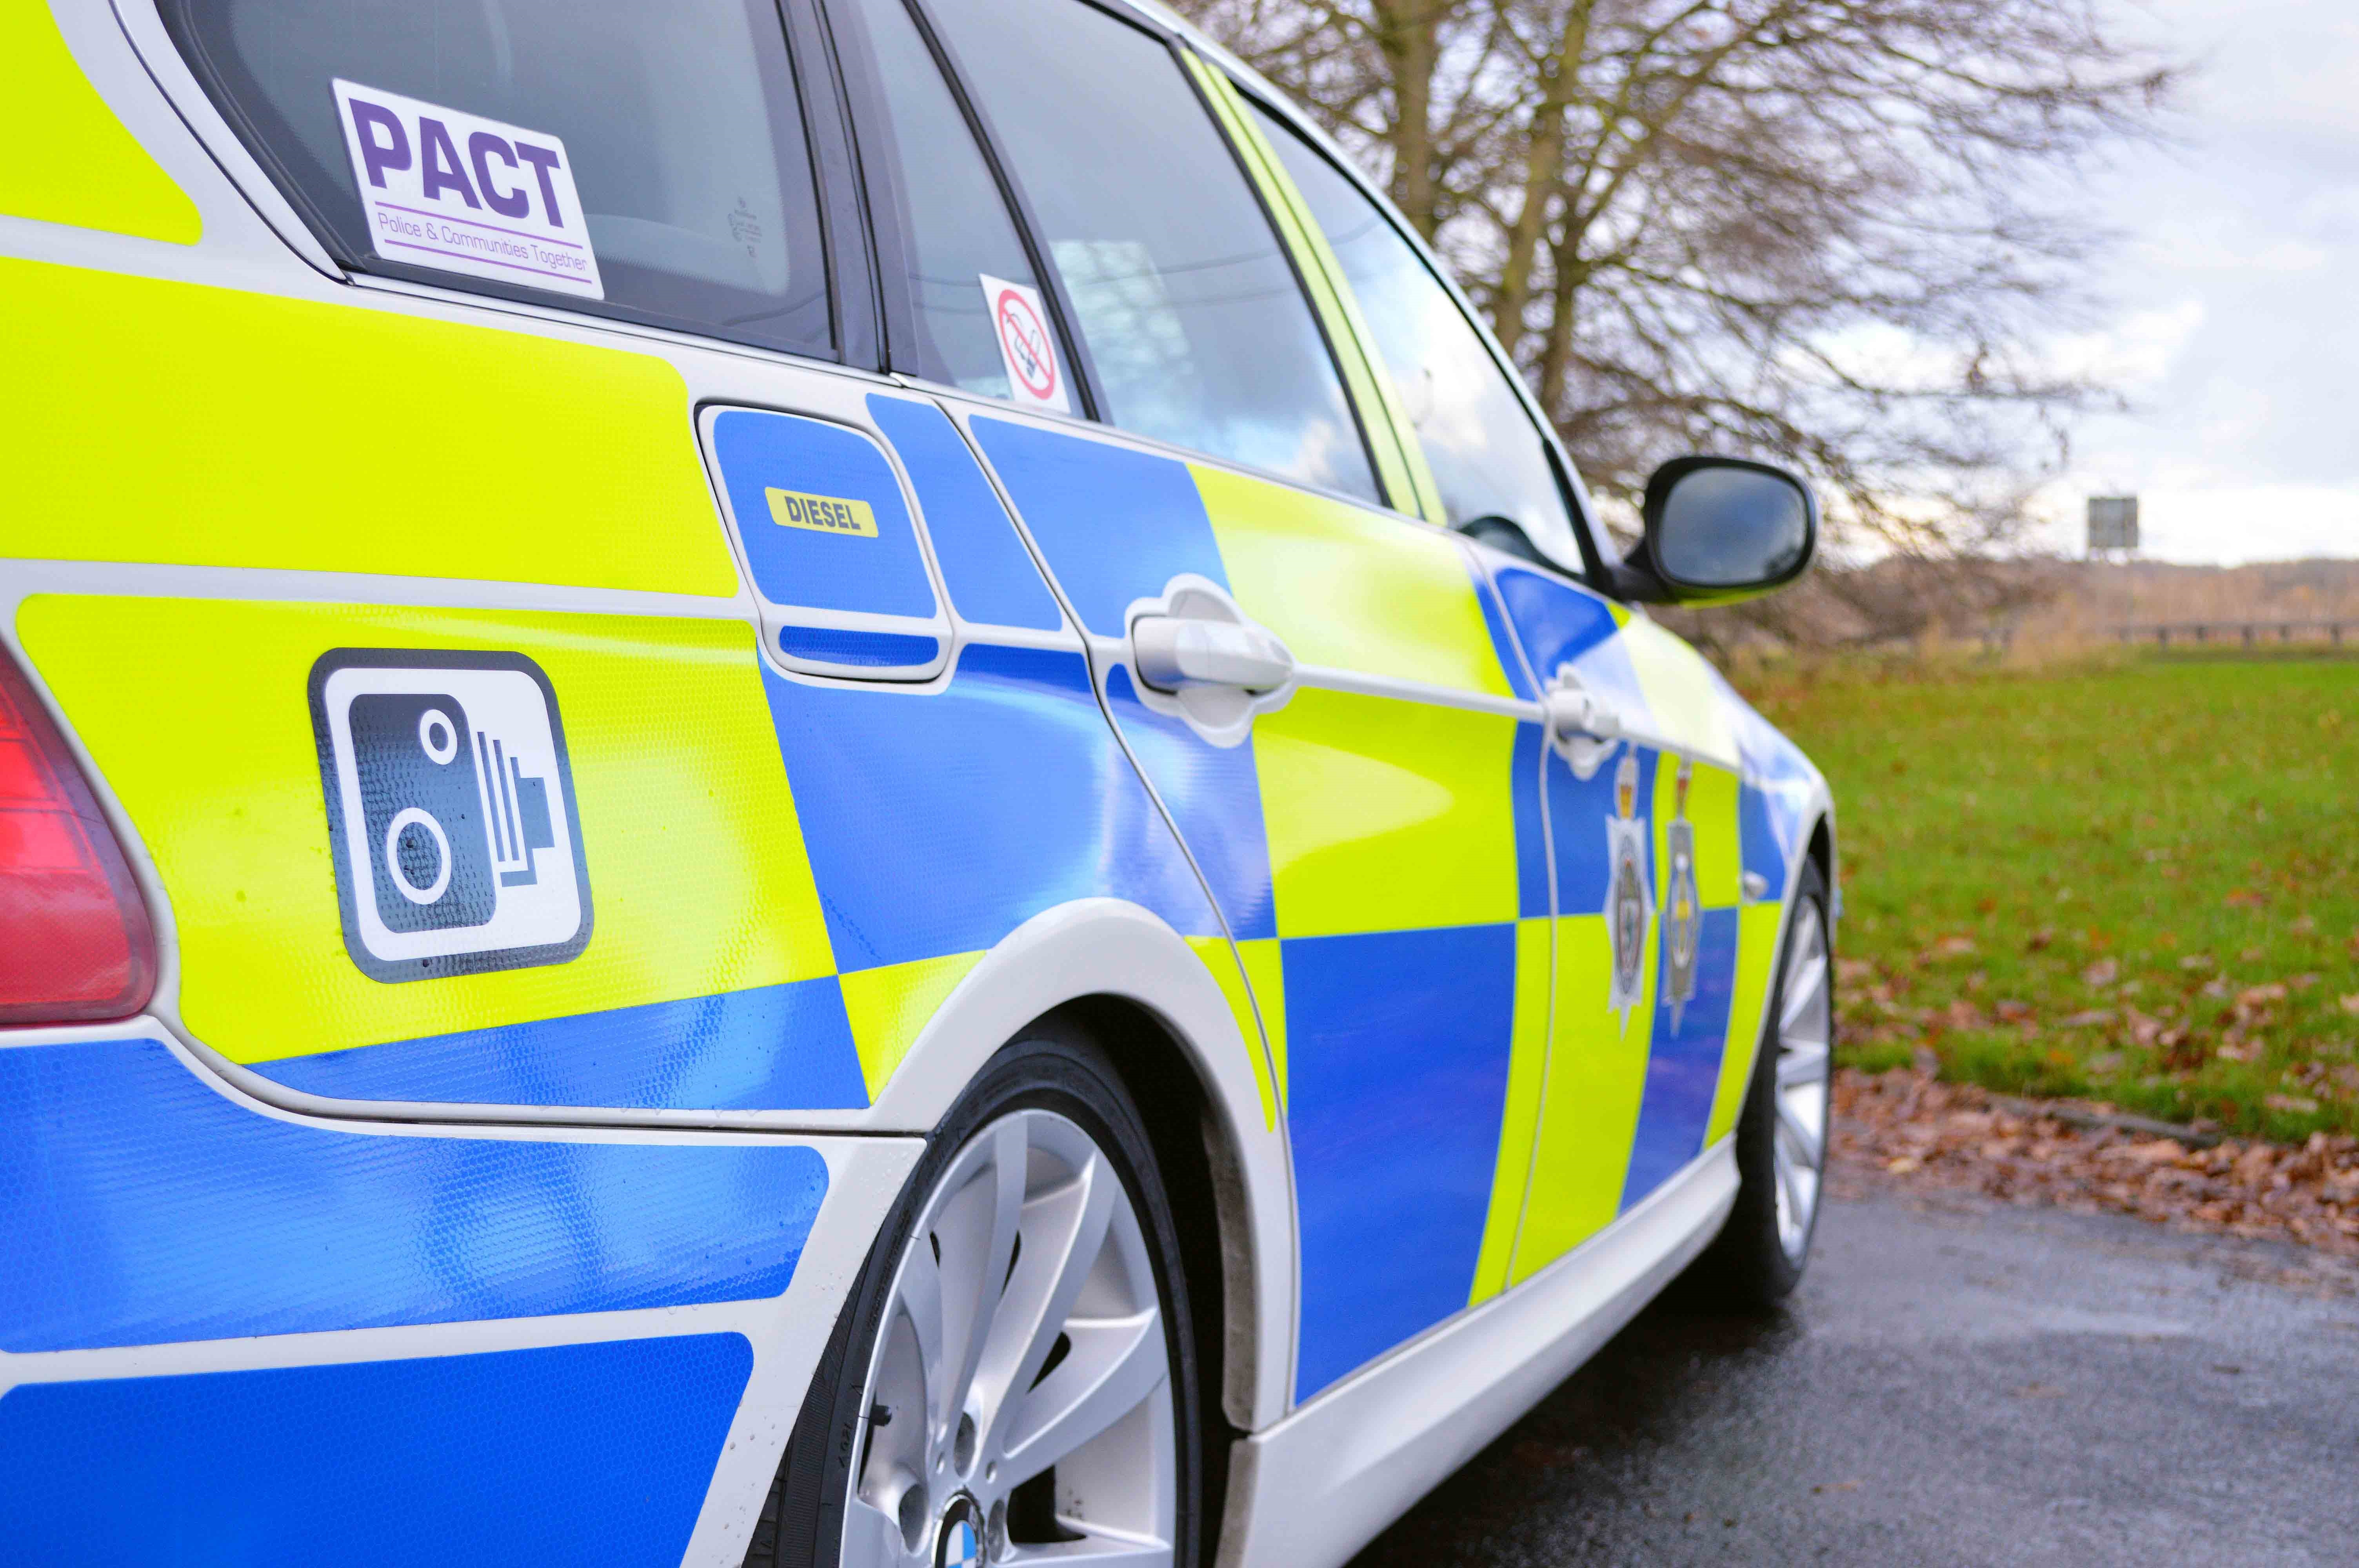 Speeding Targeted Across Two Counties